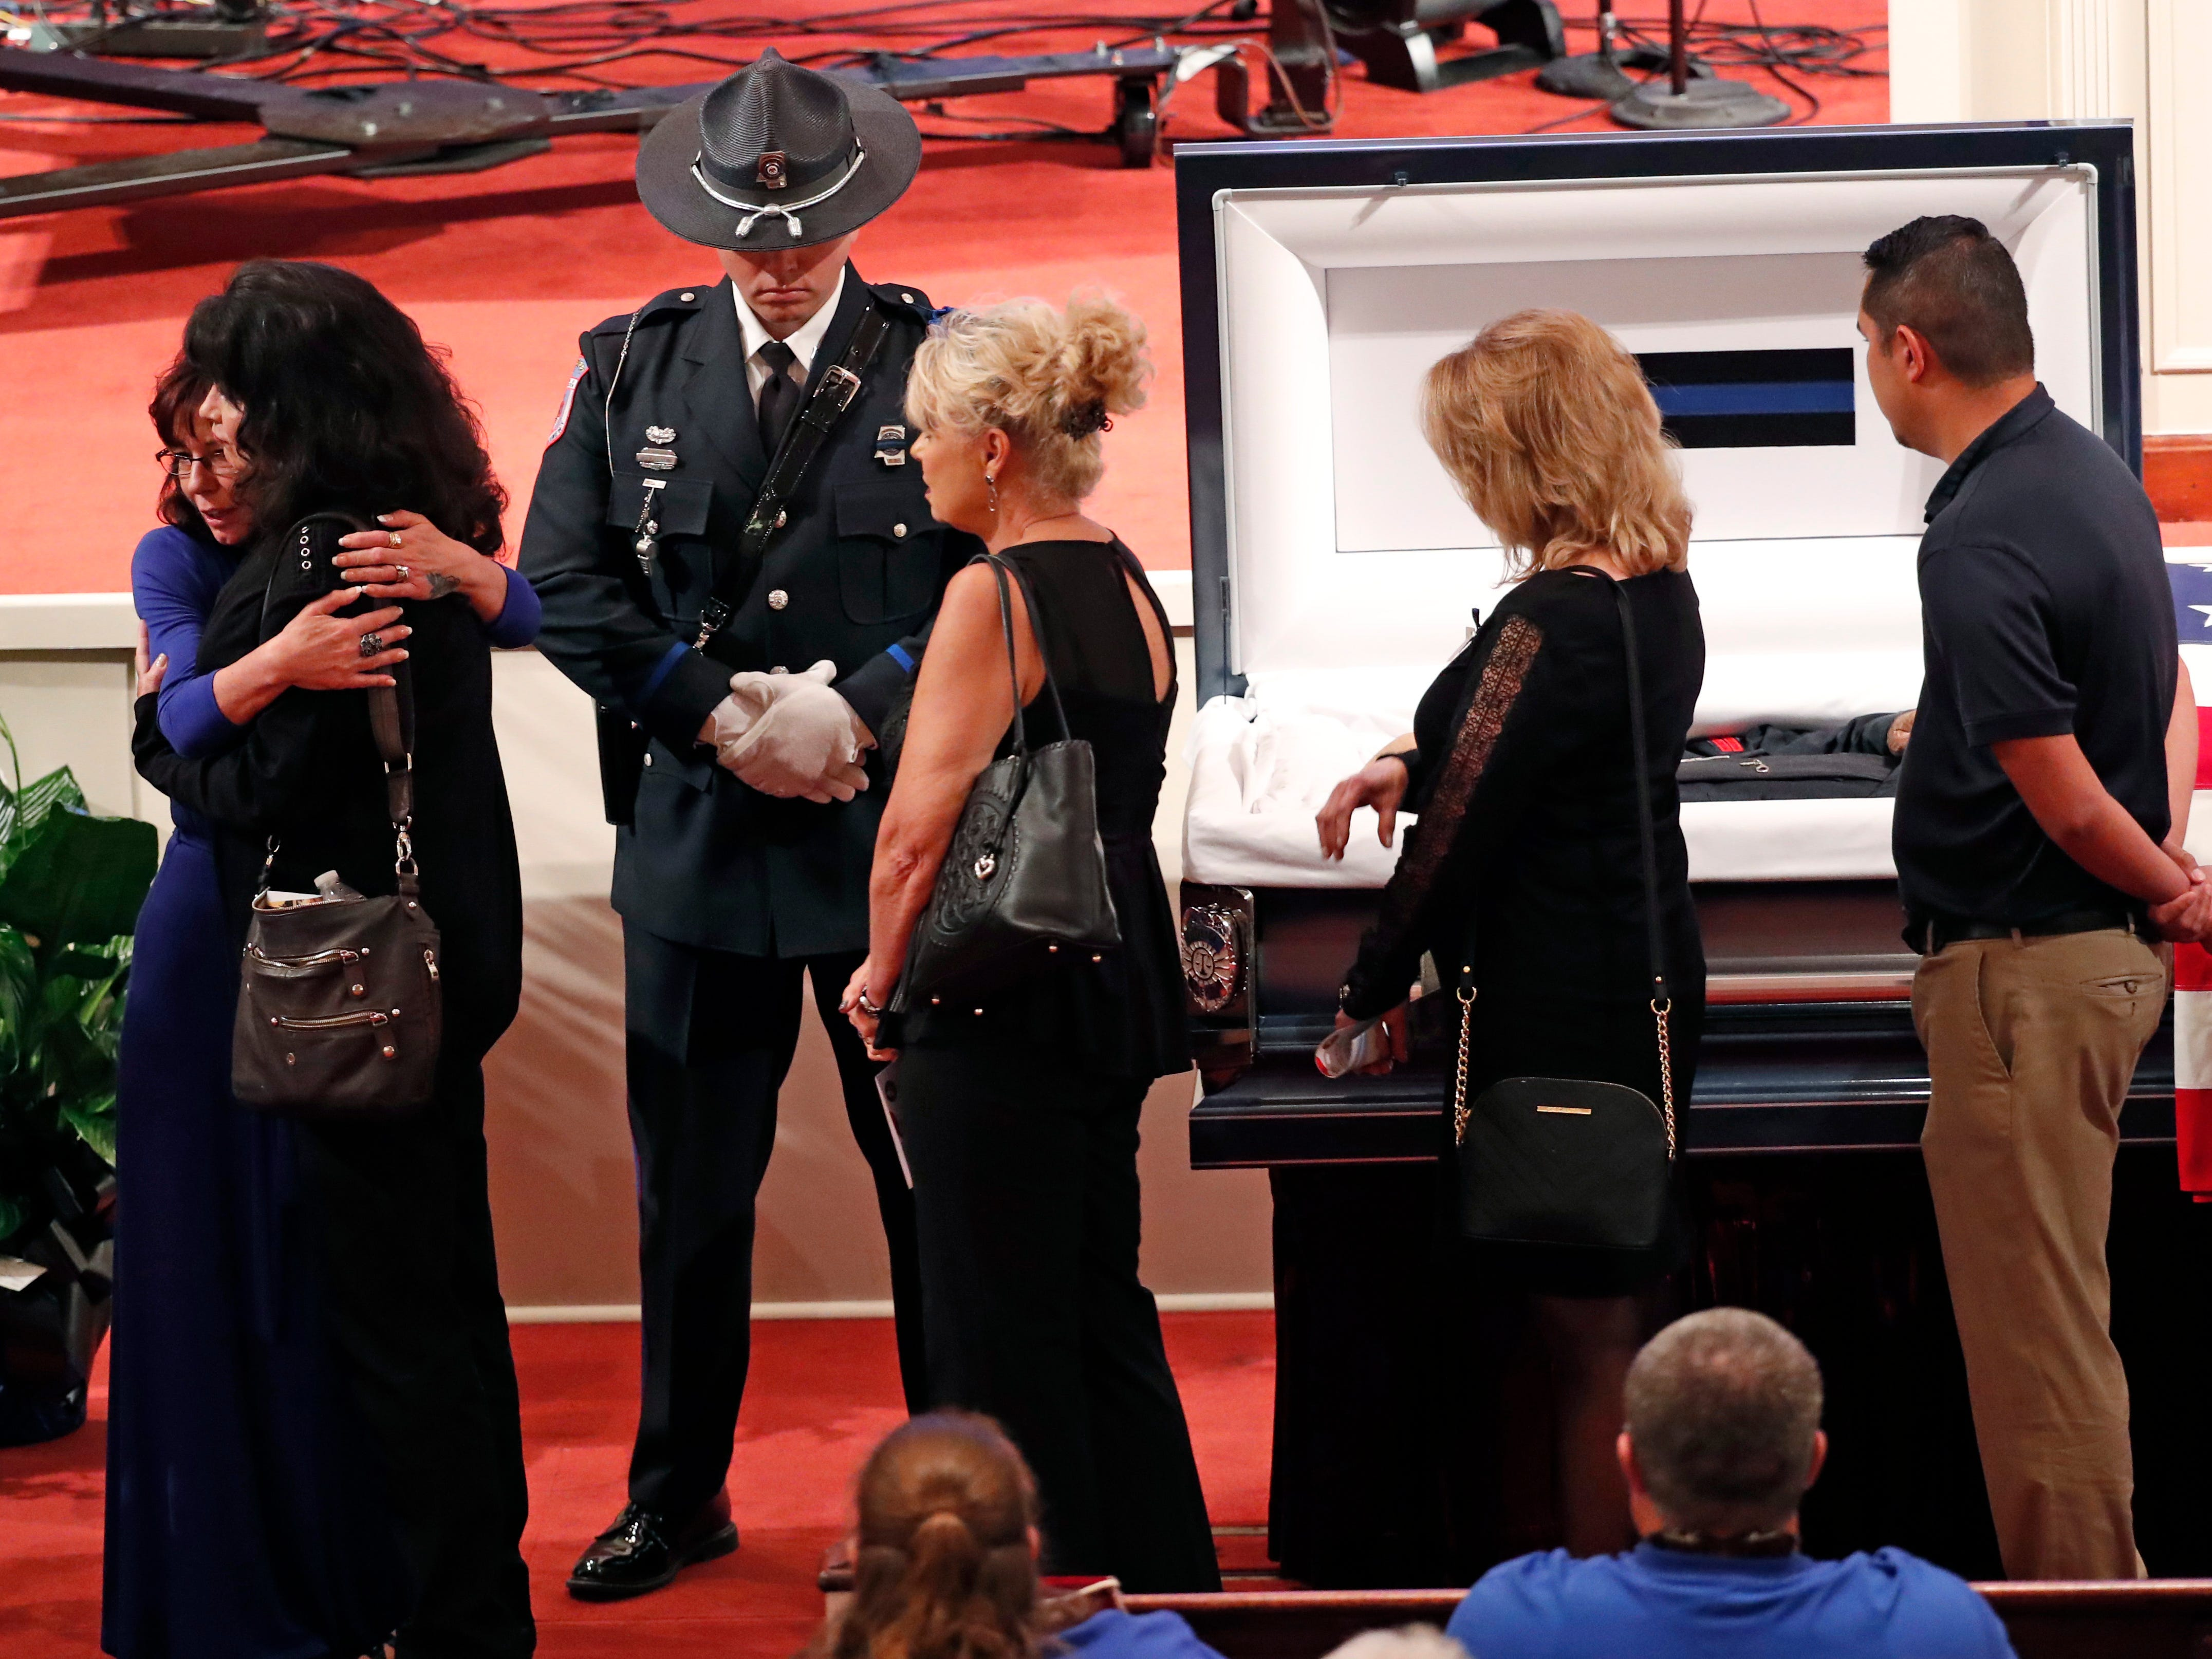 Pamela McKeithen, widow of officer Robert S. McKeithen, left, hugs a mourner as visiting law enforcement officers, friends and community residents pay their last respects to McKeithen and his family in the First Baptist Church of Biloxi, Monday morning, May 13, 2019, prior to the funeral service.